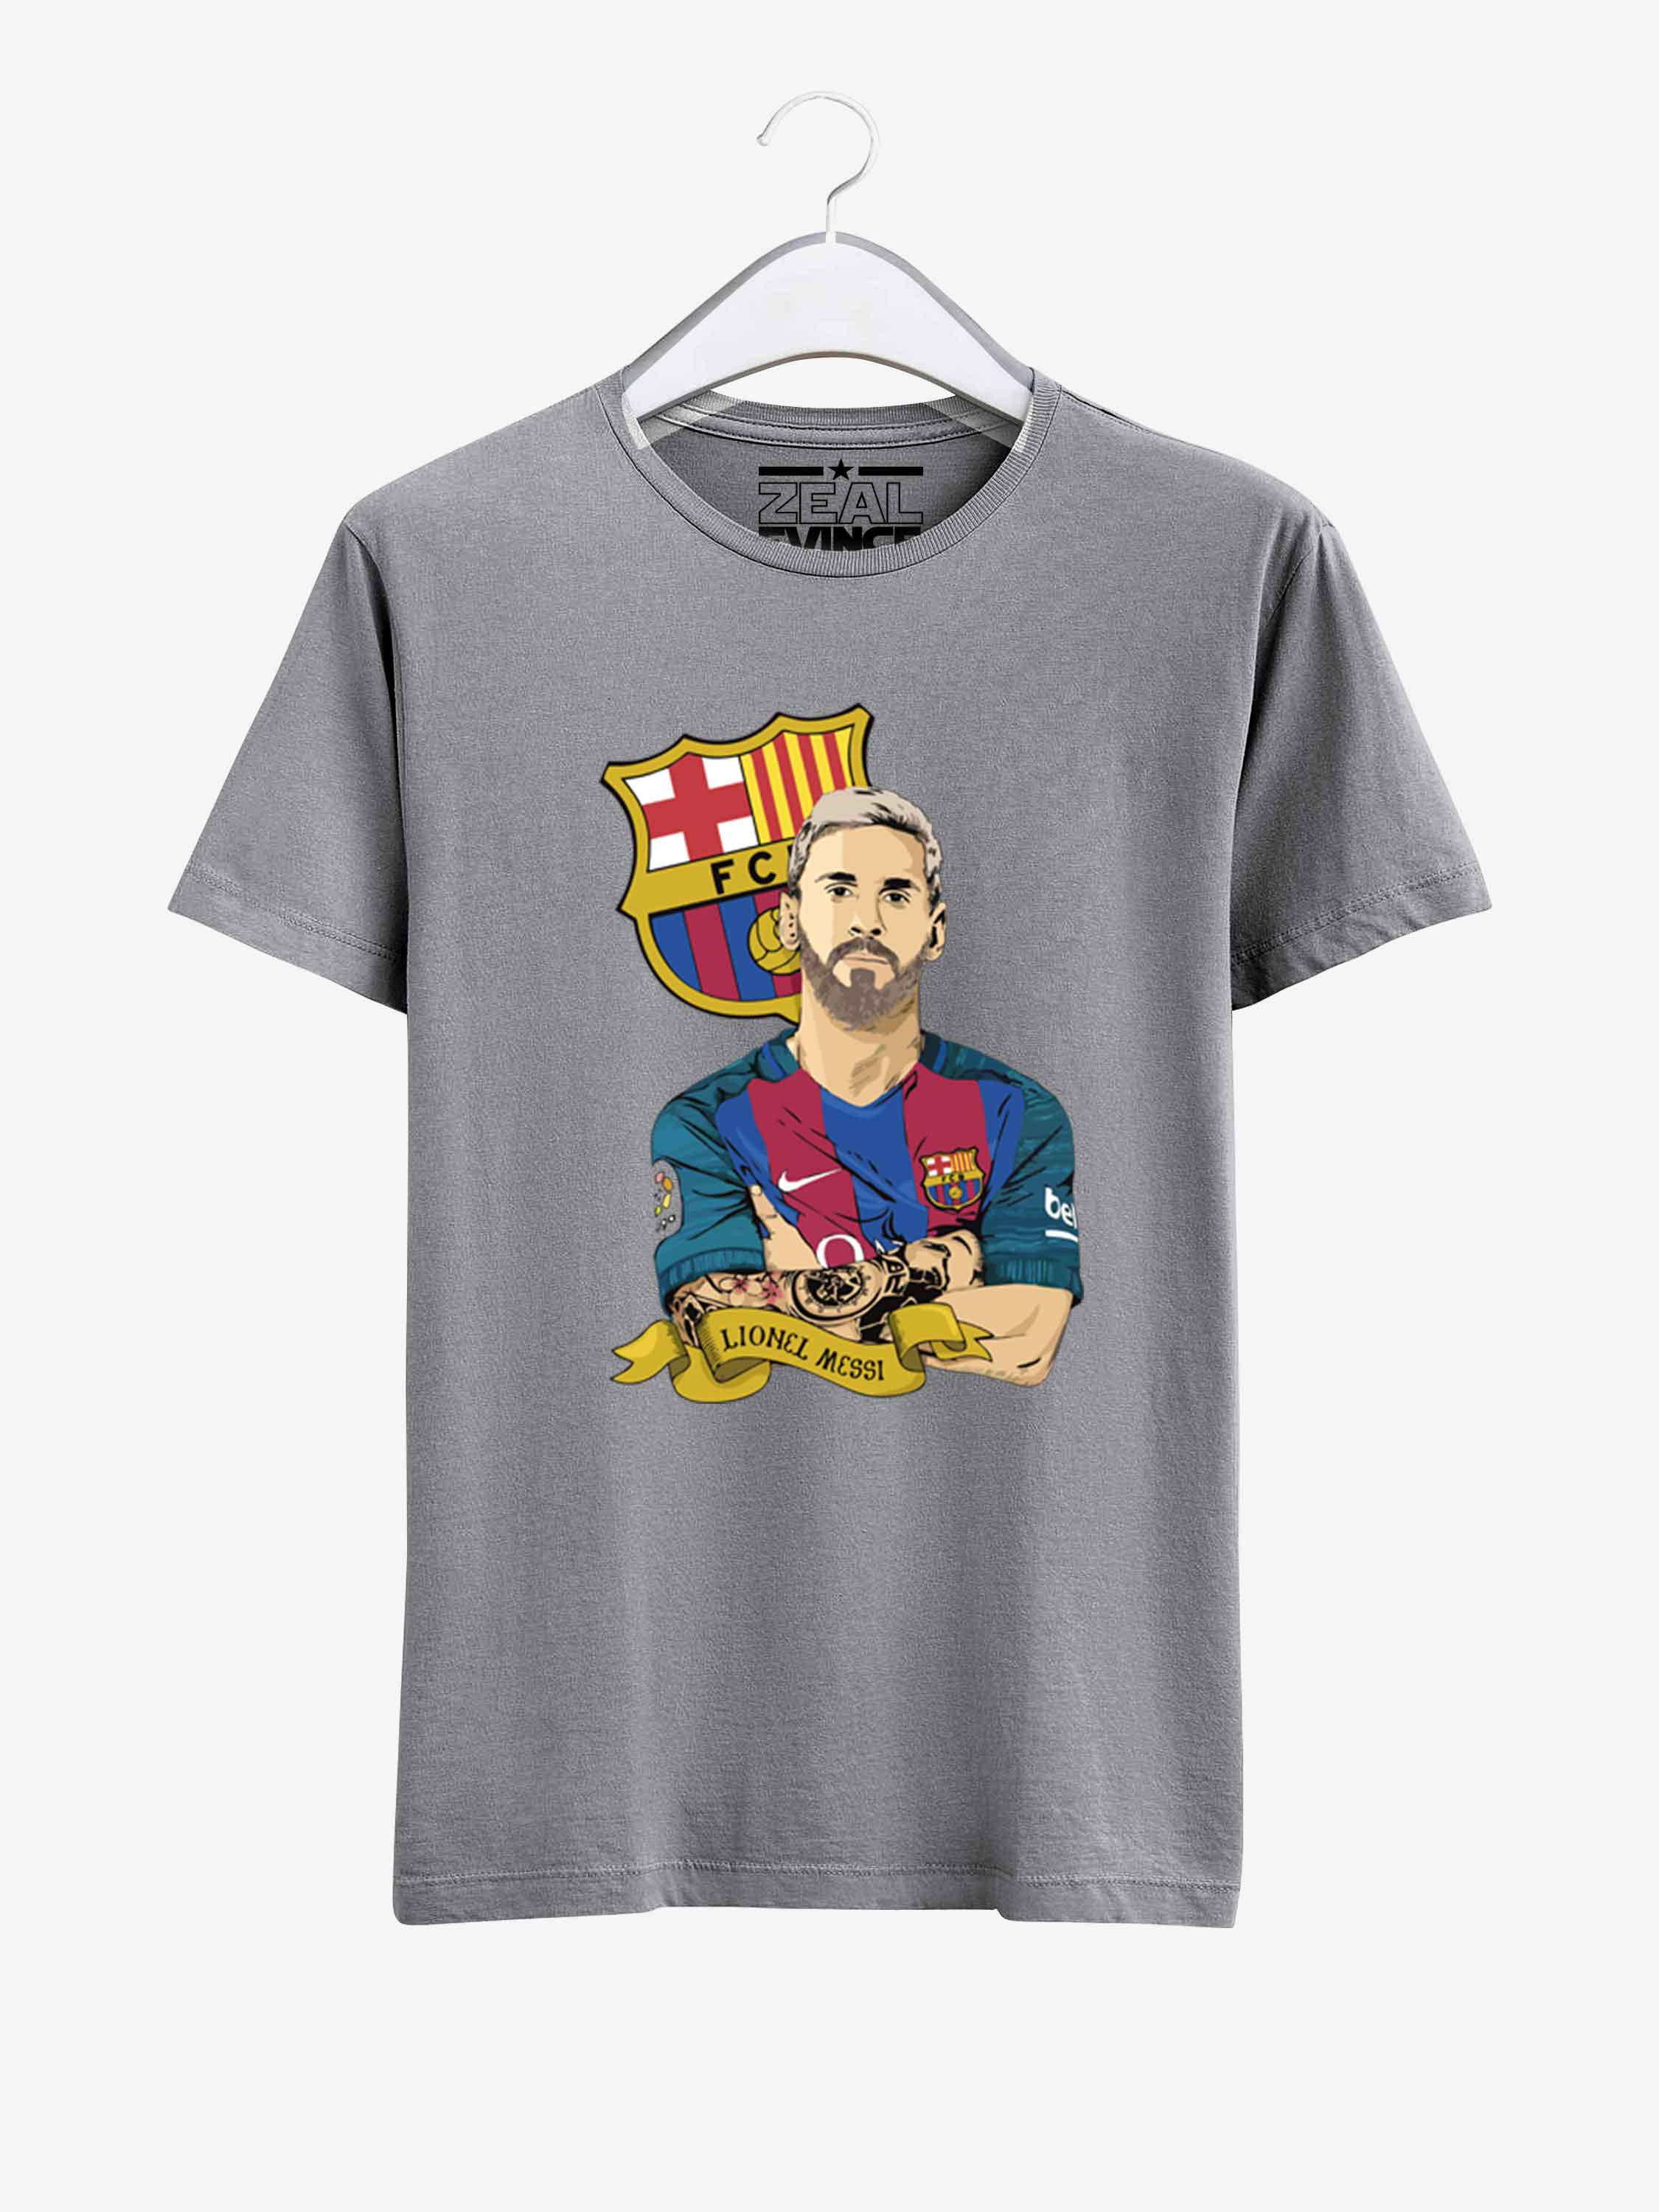 hot sale online cb028 829e8 Barcelona Lionel Messi T Shirt 01 Men